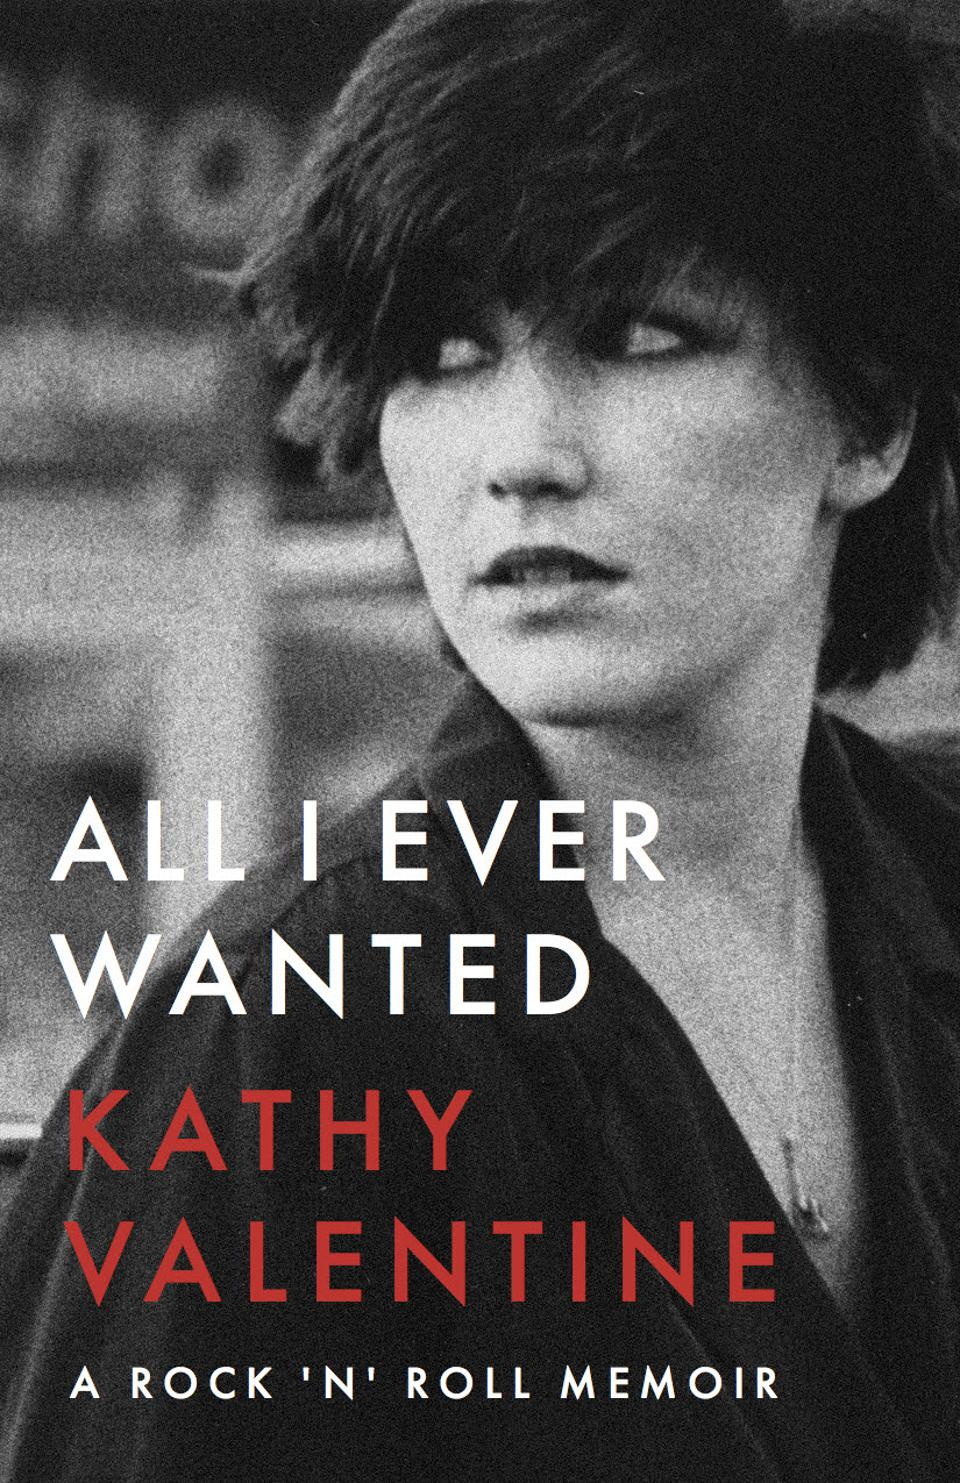 Cover of 'All I Ever Wanted' by Kathy Valentine.